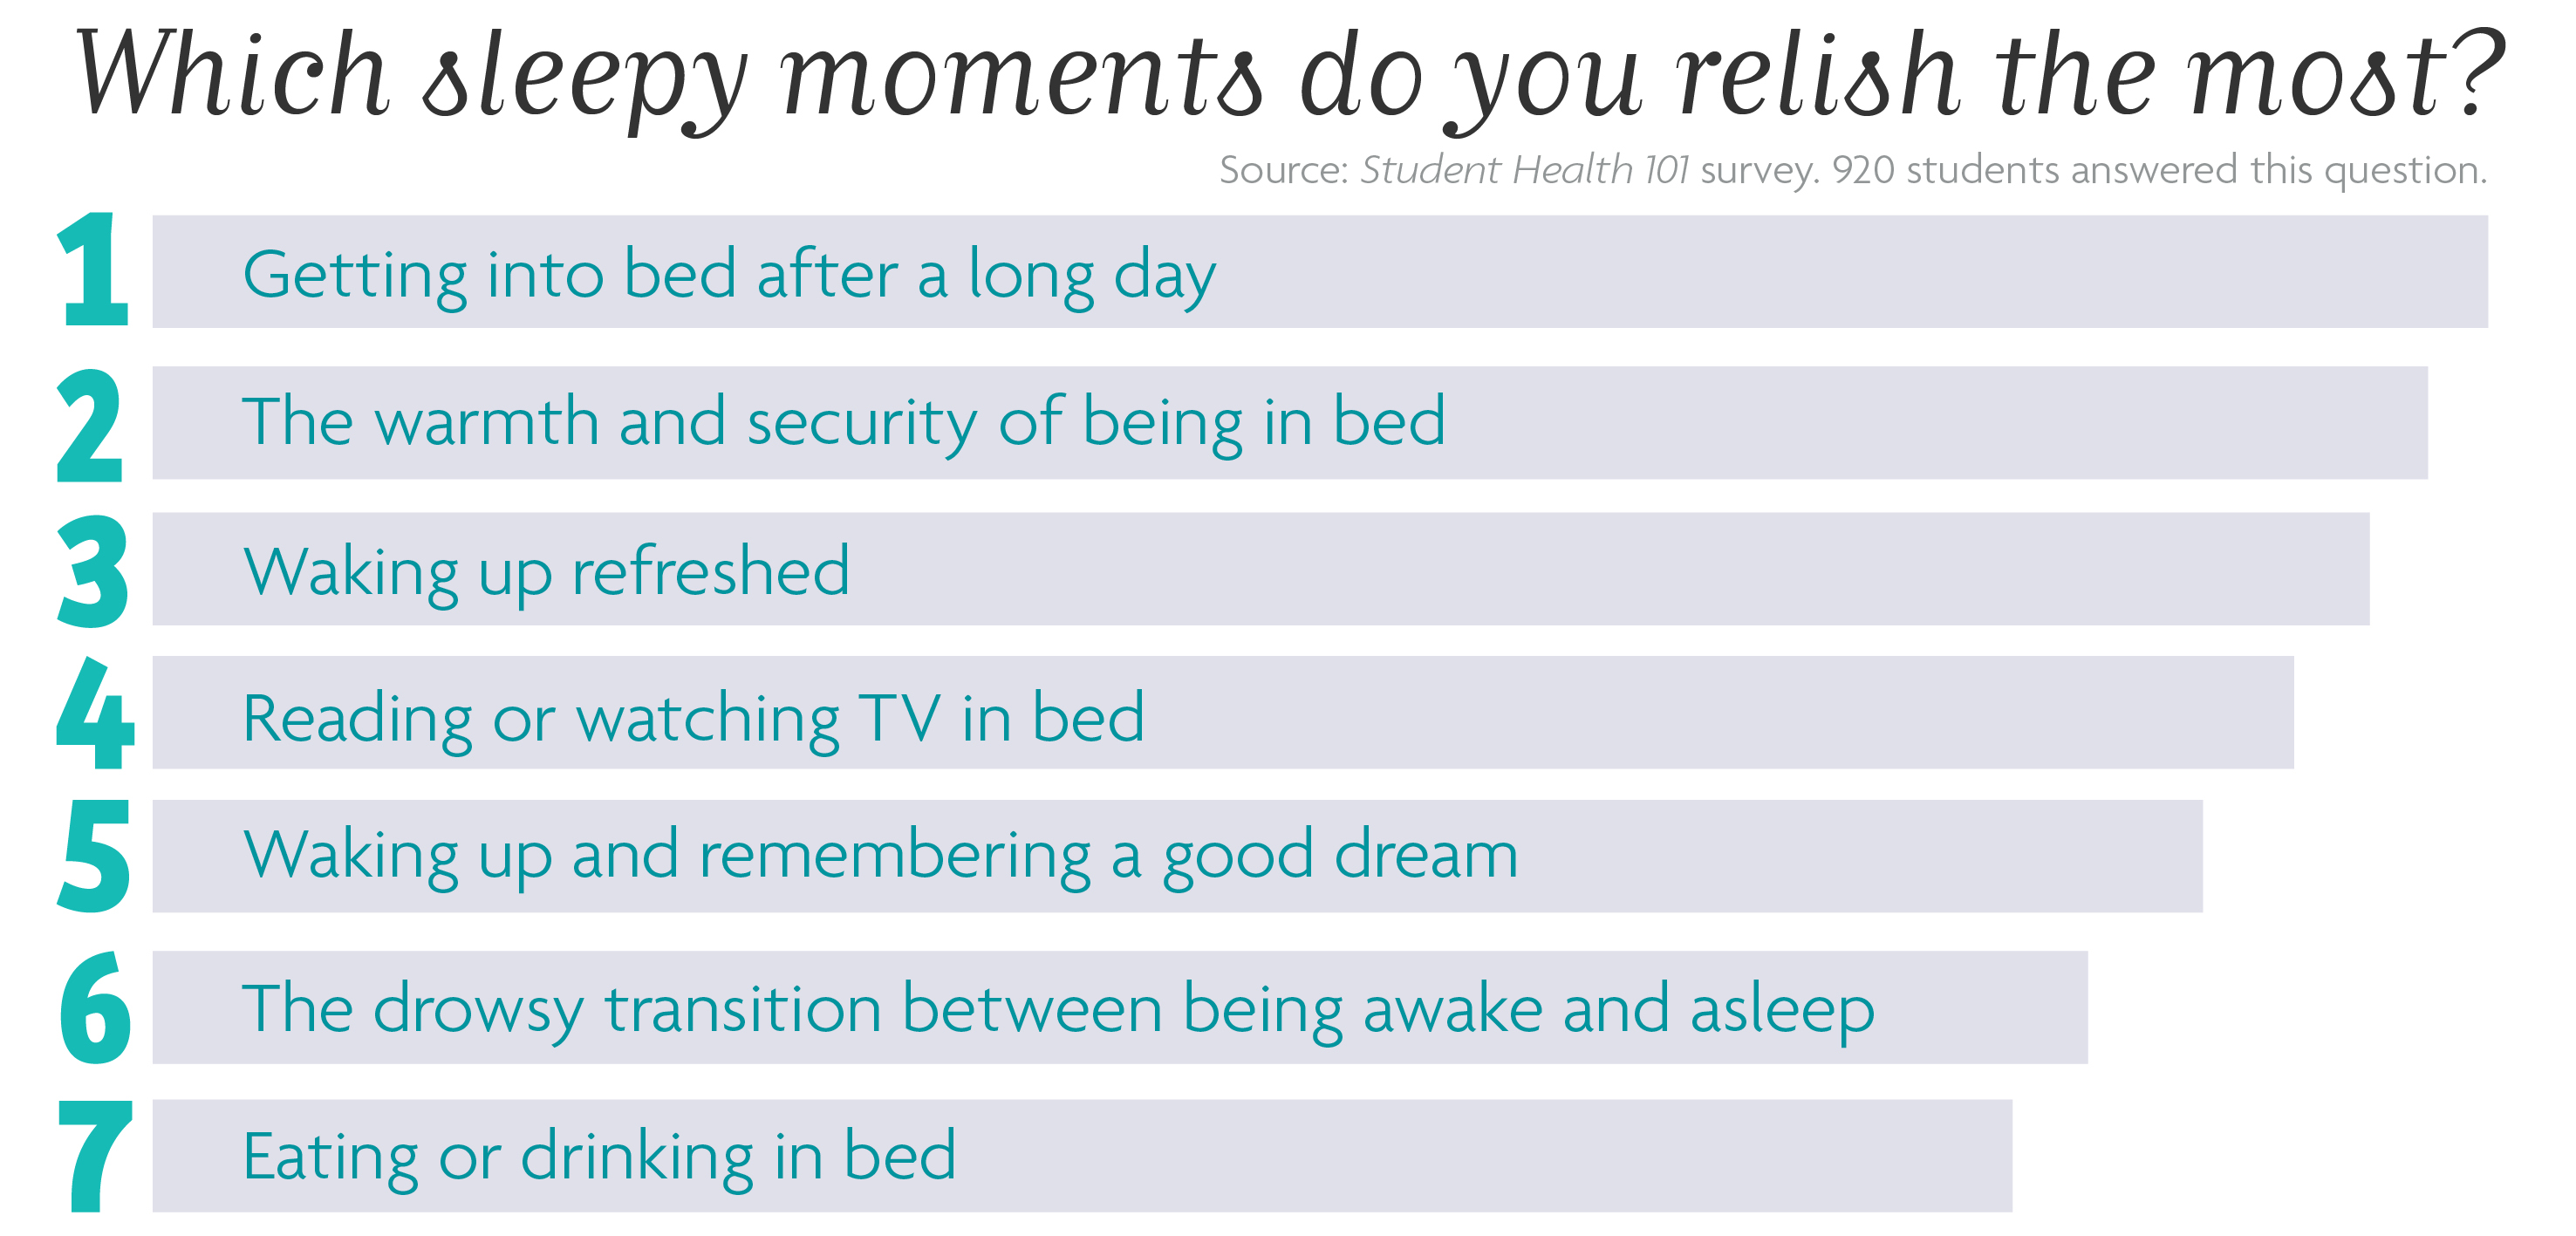 Which sleepy moments do you relish the most? Source: Student Health 101 survey. 920 students answered this question. 1. Getting into bed after a long day 2. The warmth and security of being in bed 3. Waking up refreshed 4. Reading or watching TV in bed 5. Waking up and remembering a good dream 6. The drowsy transition between being awake and being asleep 7. Eating or drinking in bed